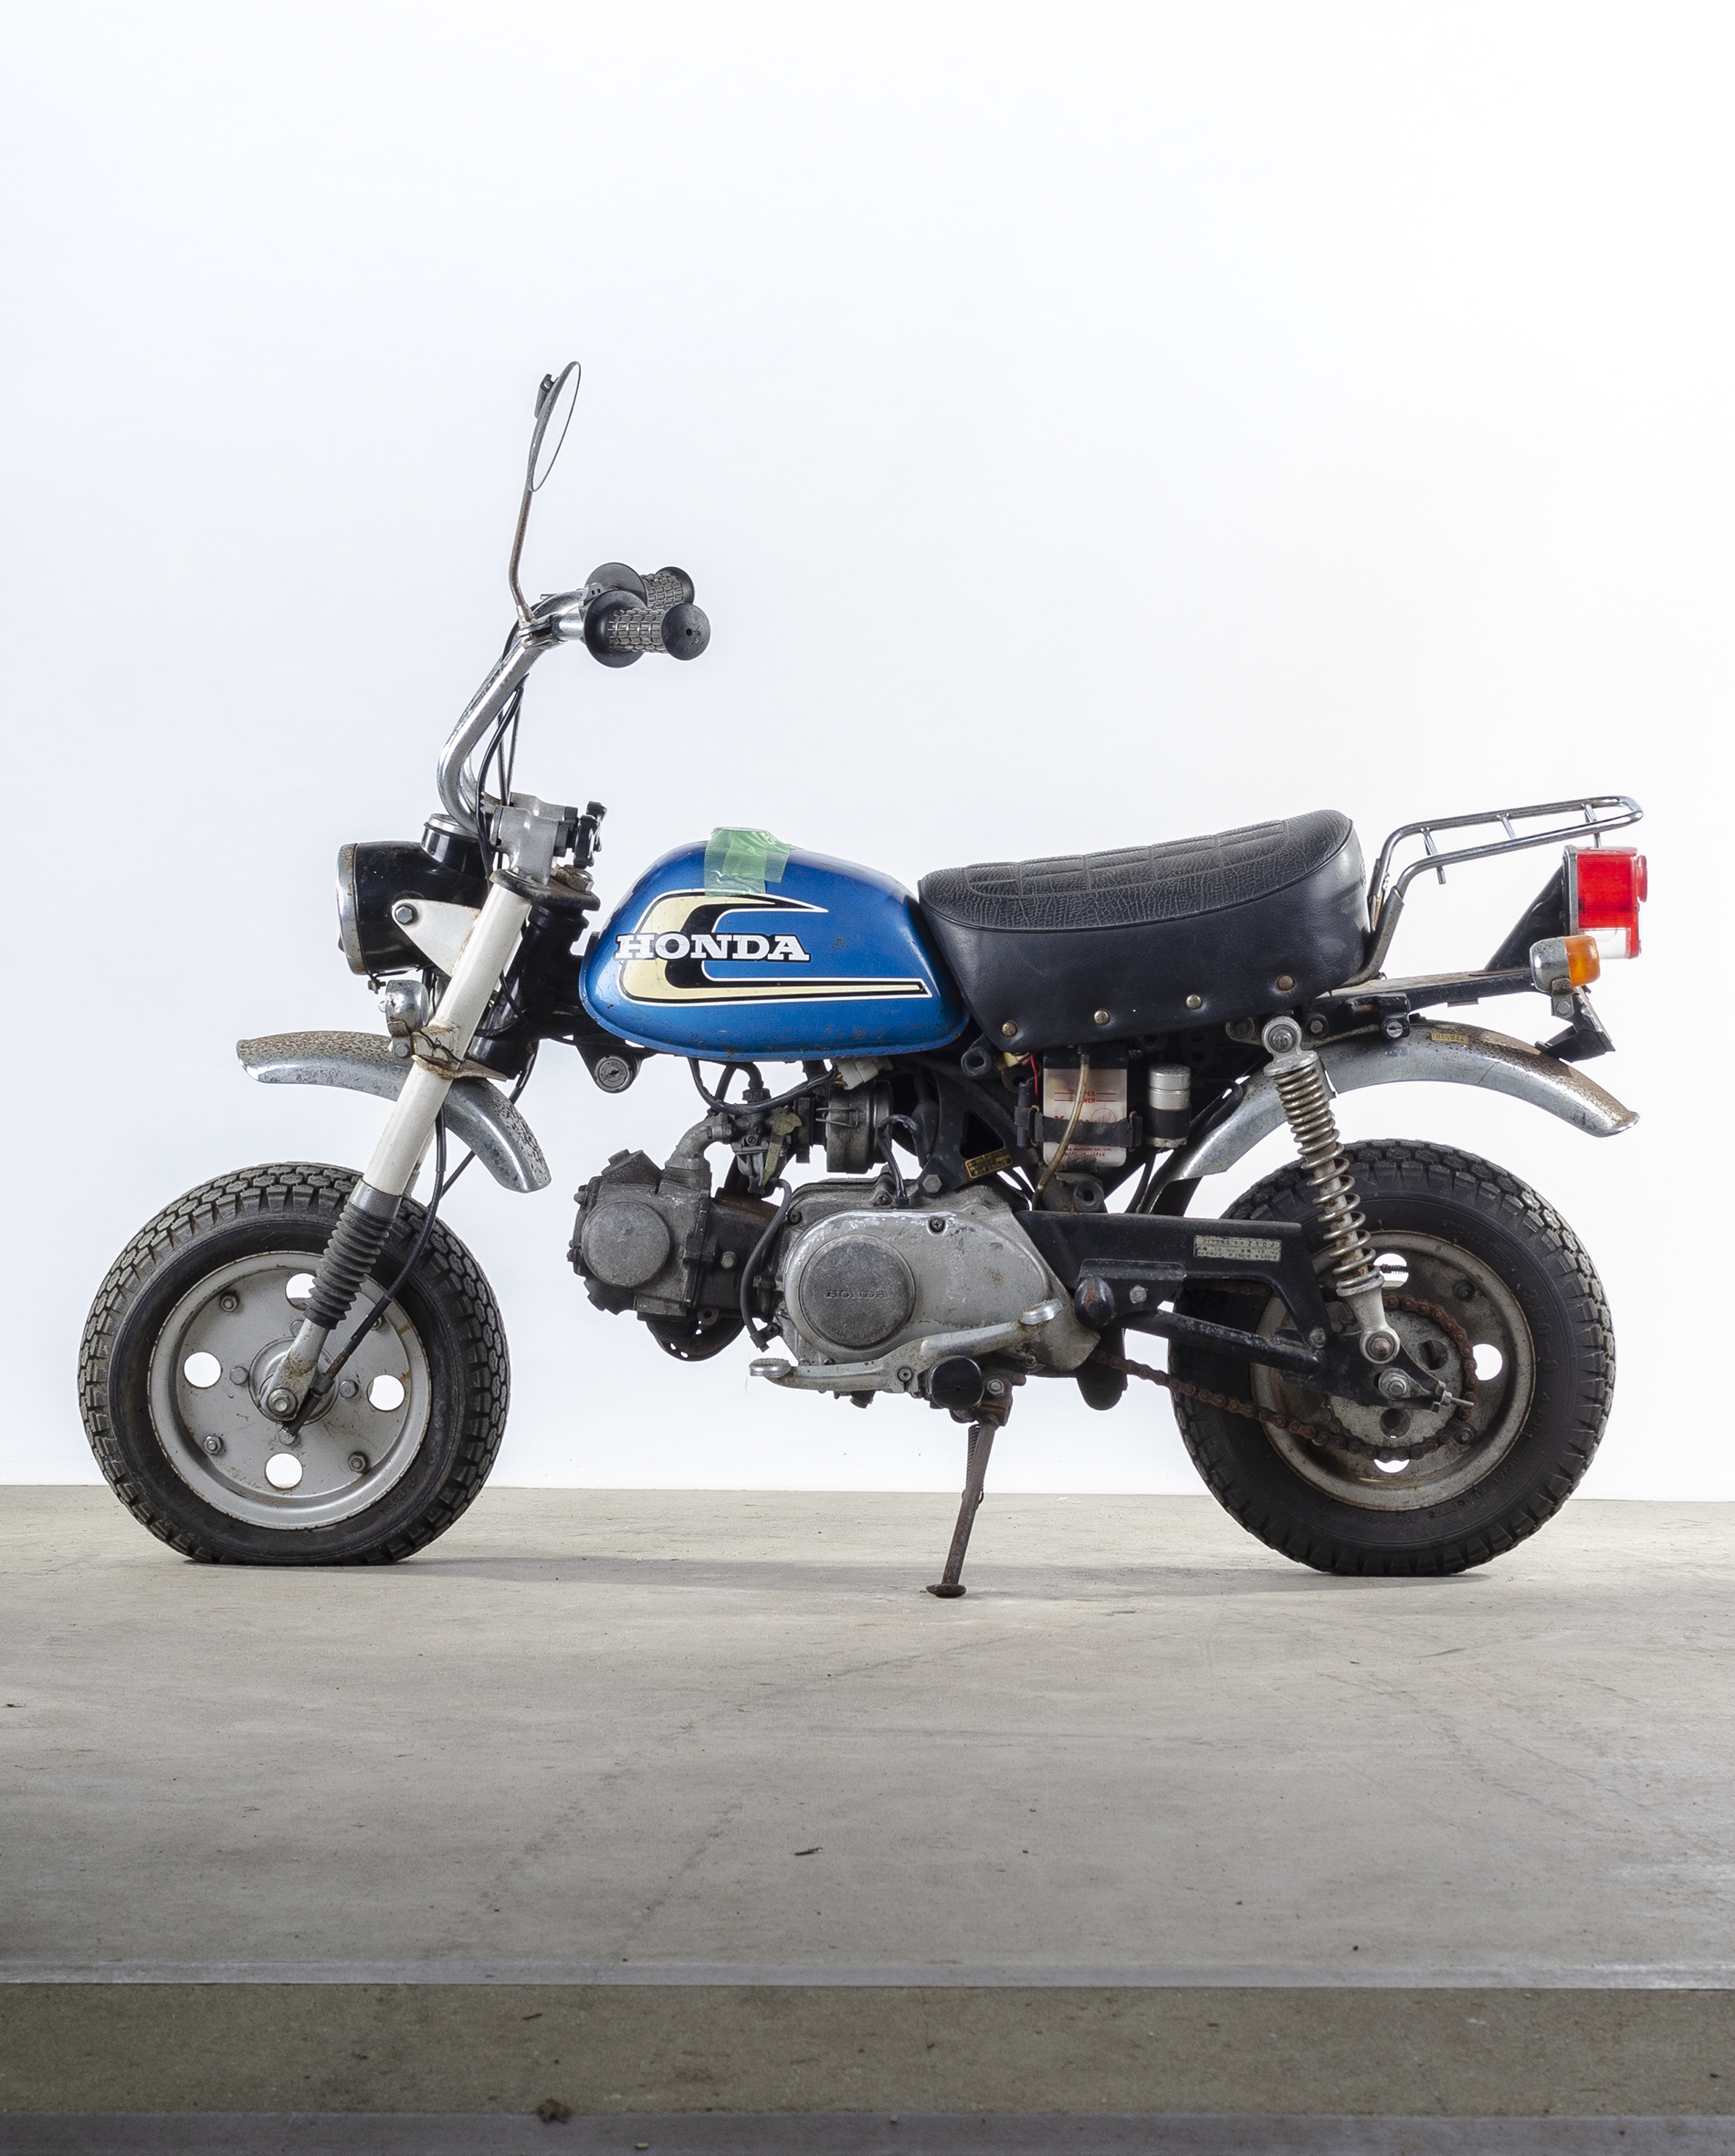 Honda Ct90 Wiring Diagram Honda Ct90 Timing Marks 1975 Honda Trail 90